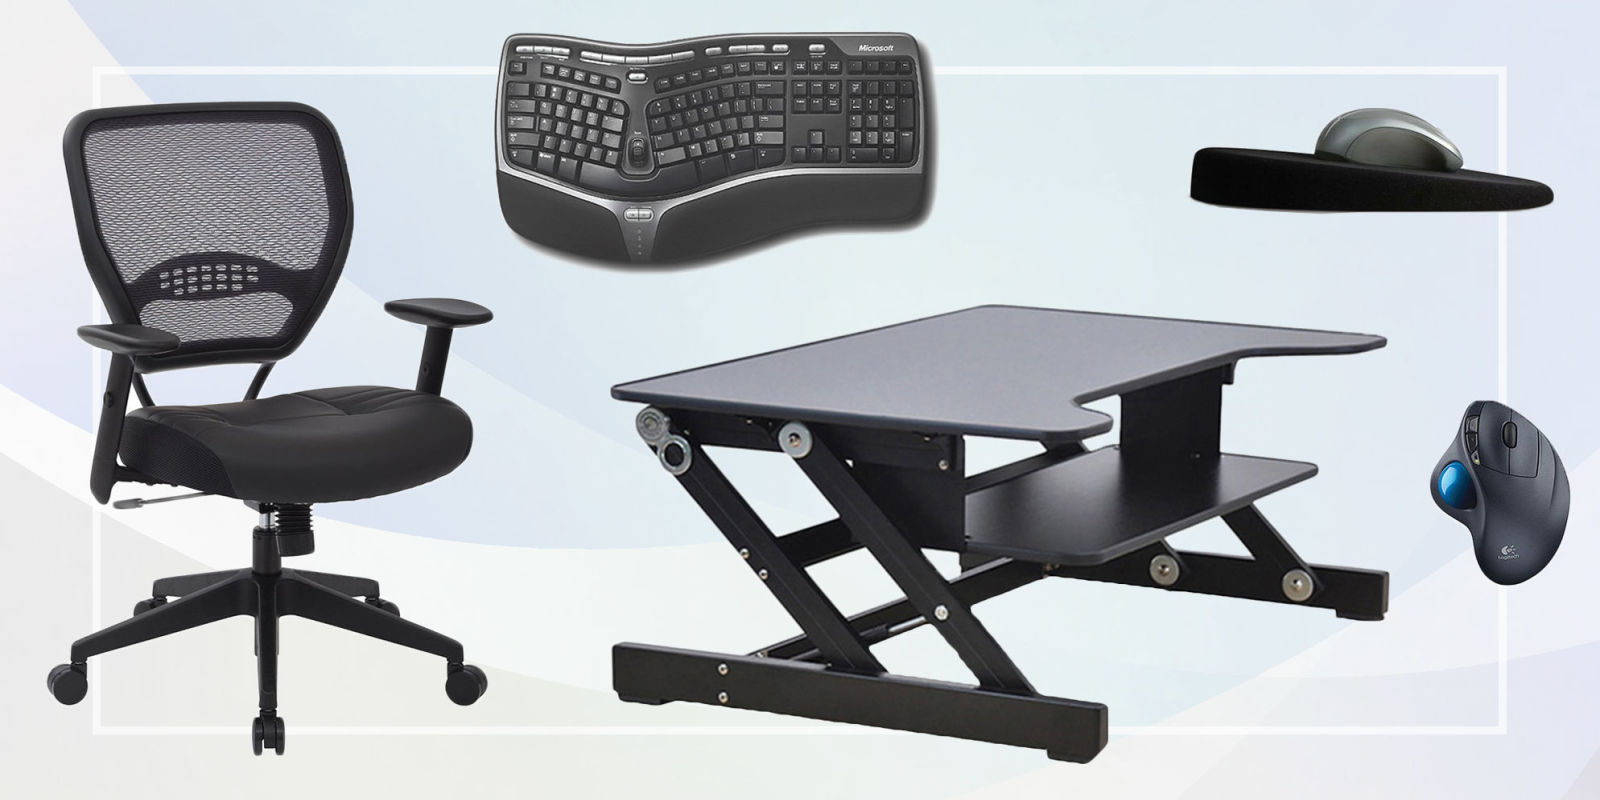 Ergonomic Chairs For Home 25 Best Ergonomic Furniture 2018 Ergonomic Office Chairs